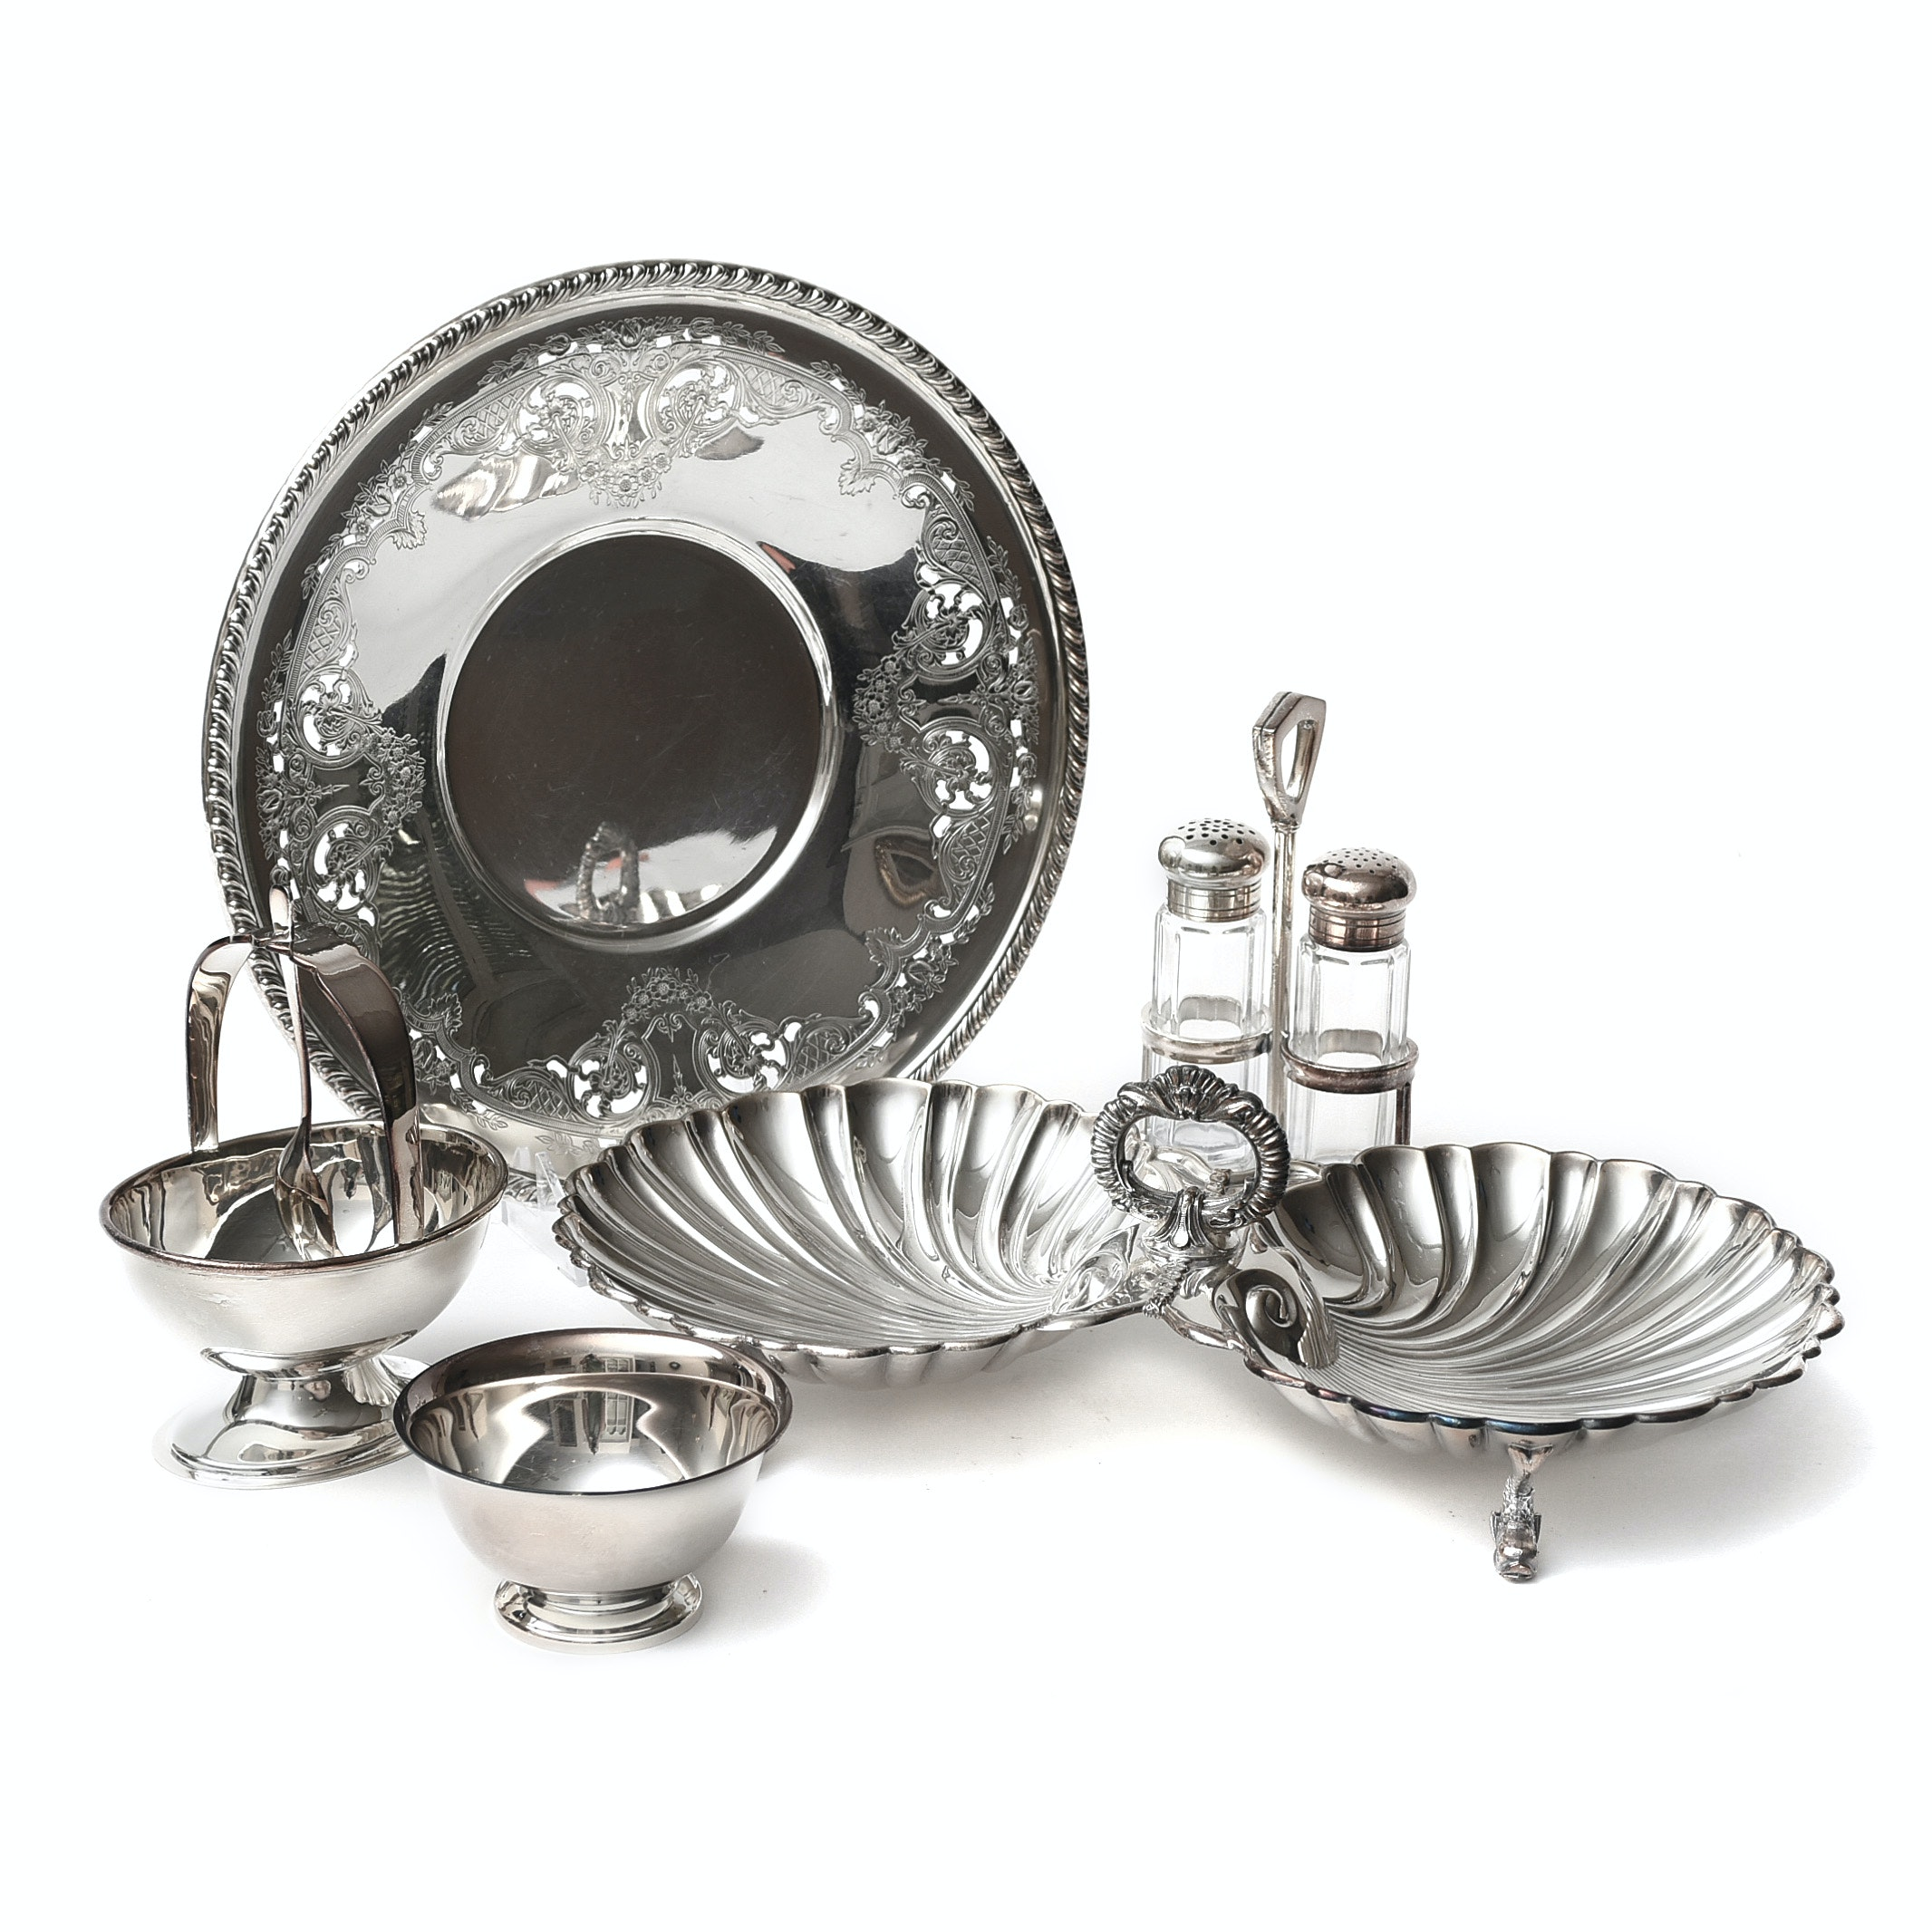 Silver Plate Tray, Shell Bowl, Salt and Pepper Set and More